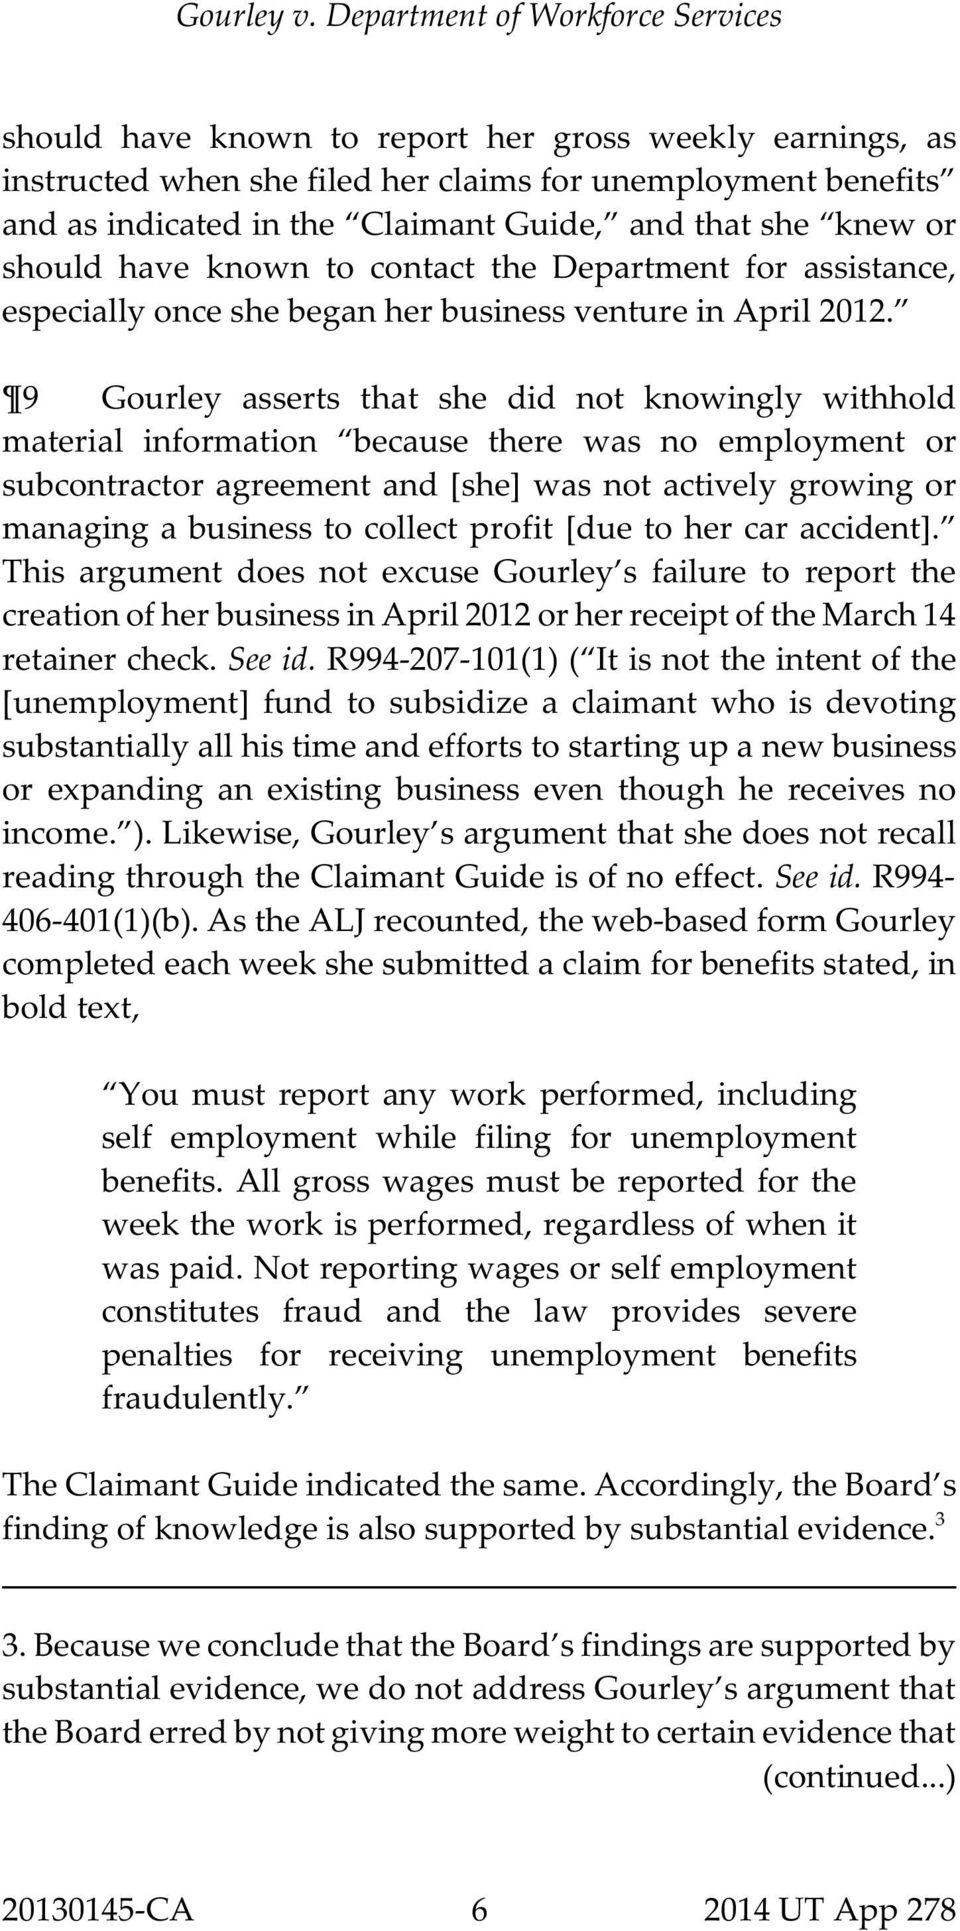 9 Gourley asserts that she did not knowingly withhold material information because there was no employment or subcontractor agreement and [she] was not actively growing or managing a business to